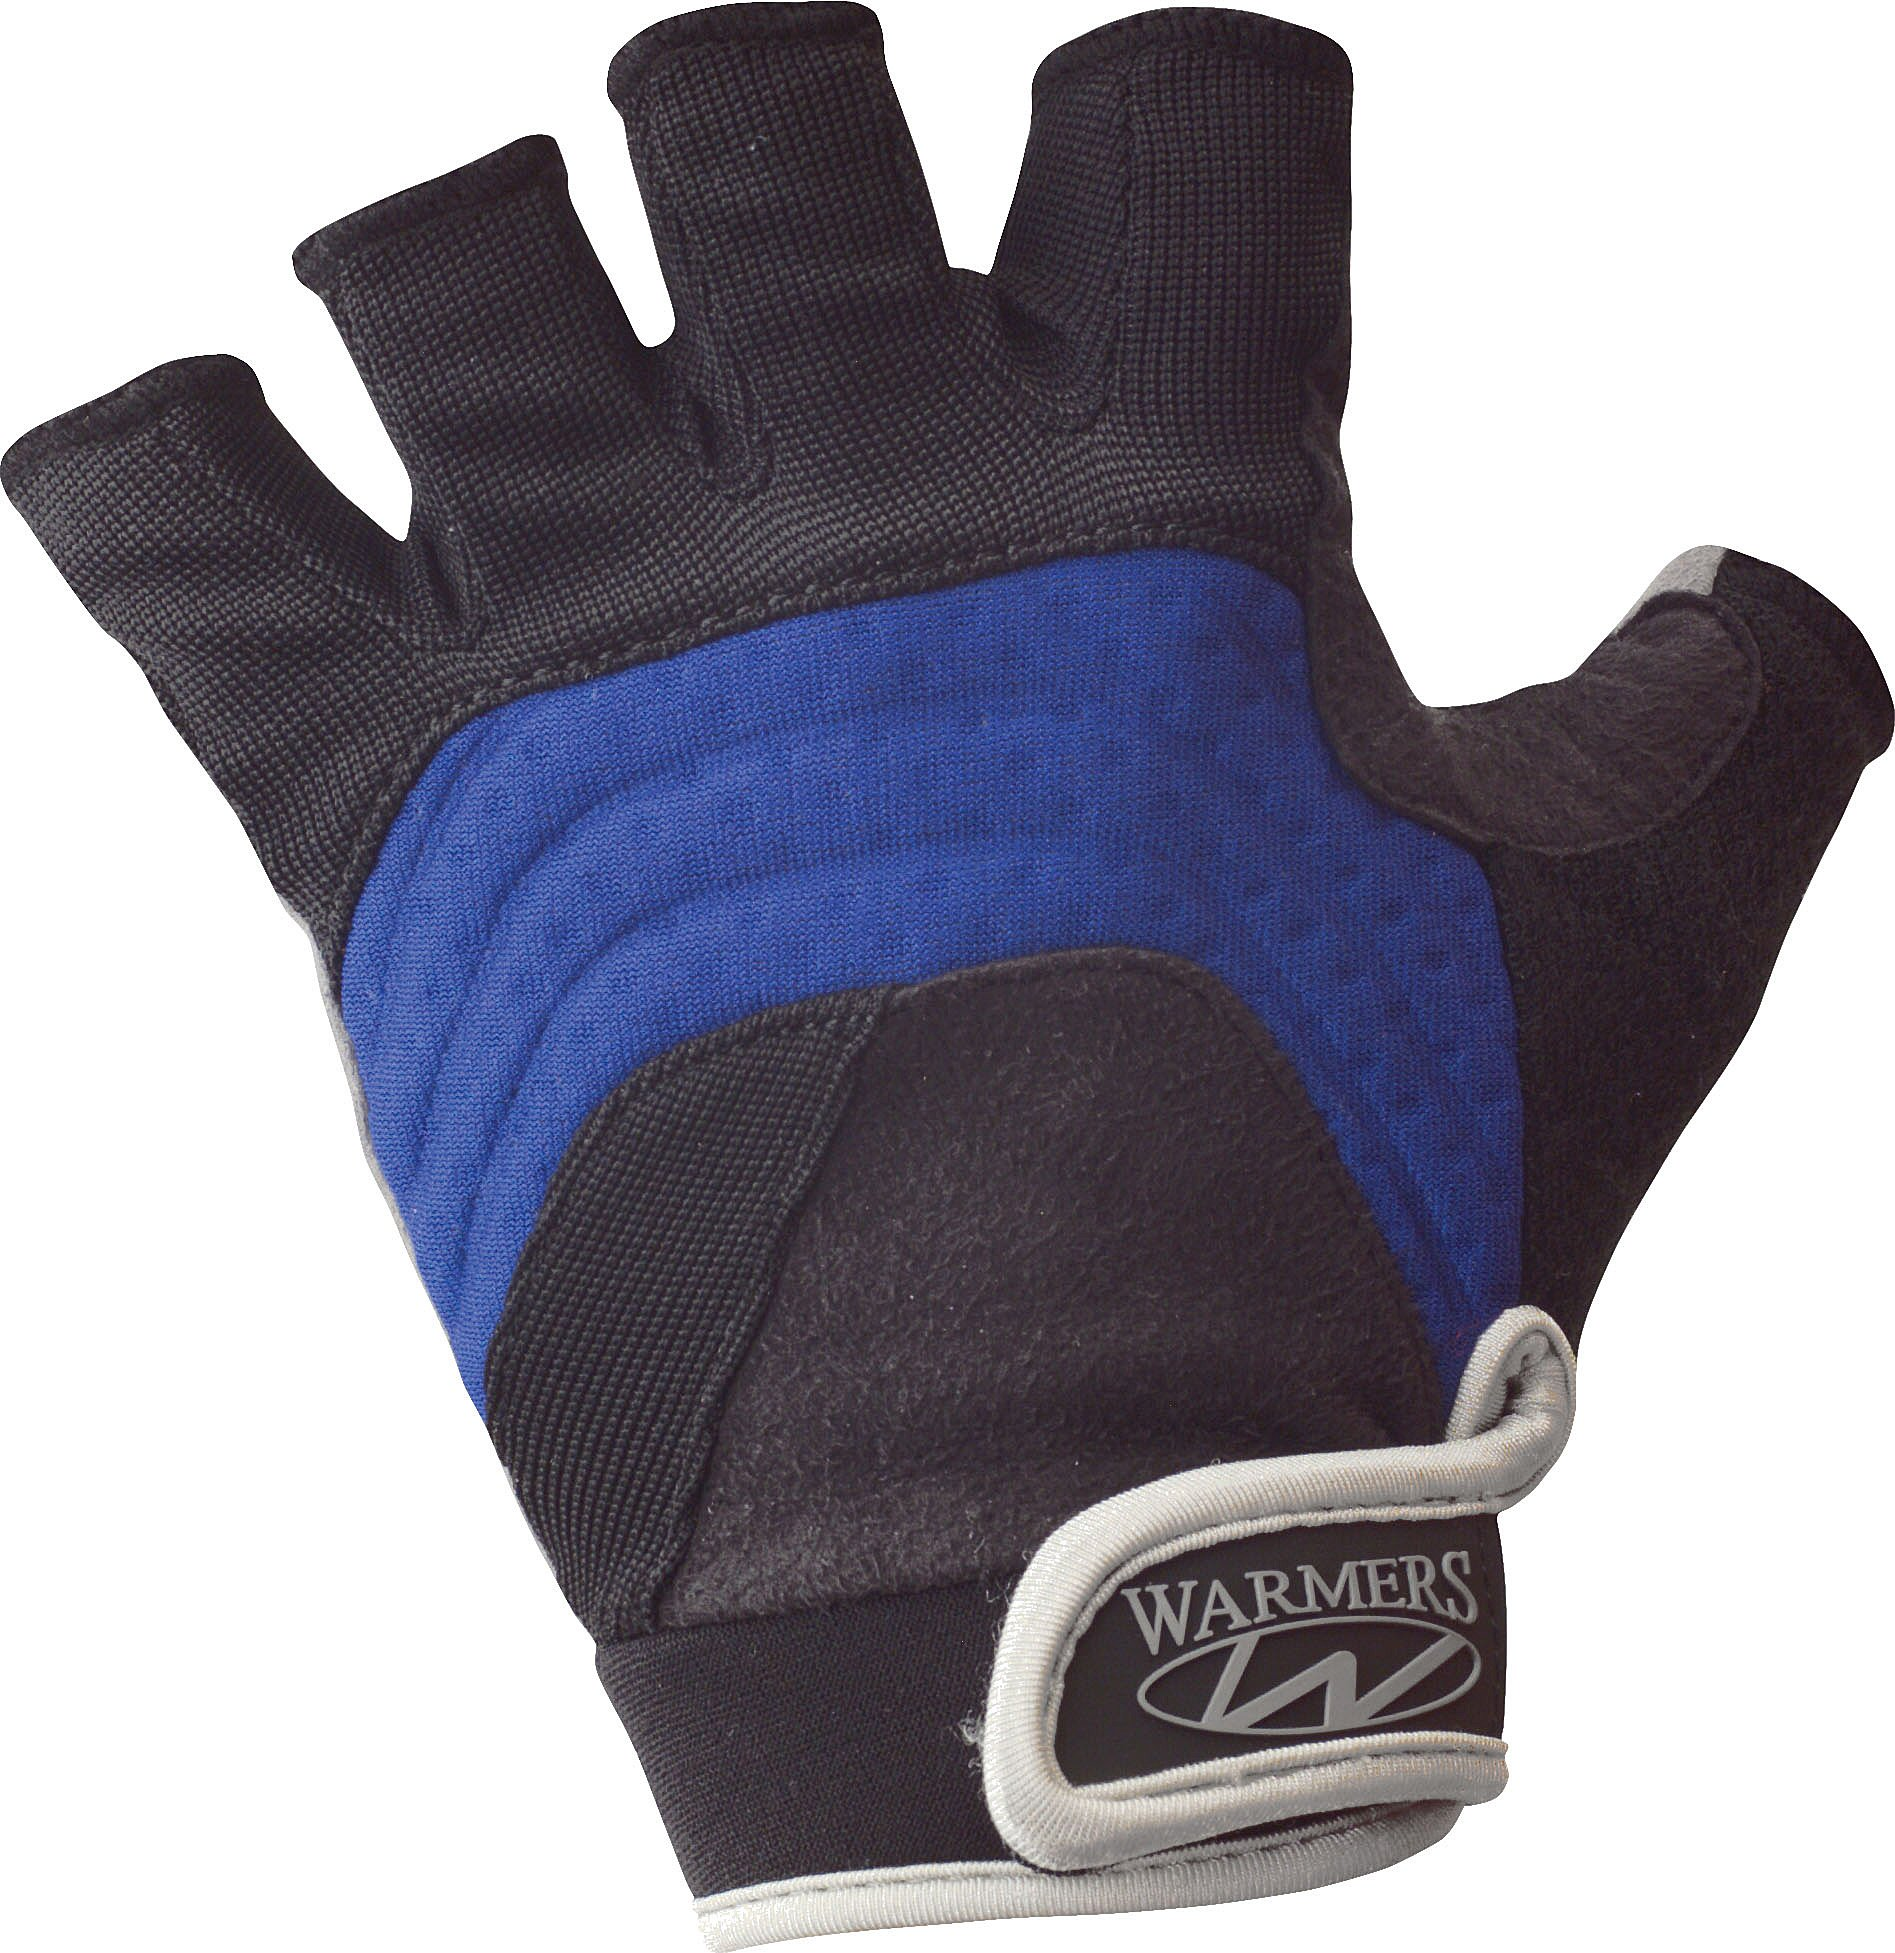 Warmers (D3245) Barnacle Half Finger Paddling Glove (Black/Blue, Large) by Warmers